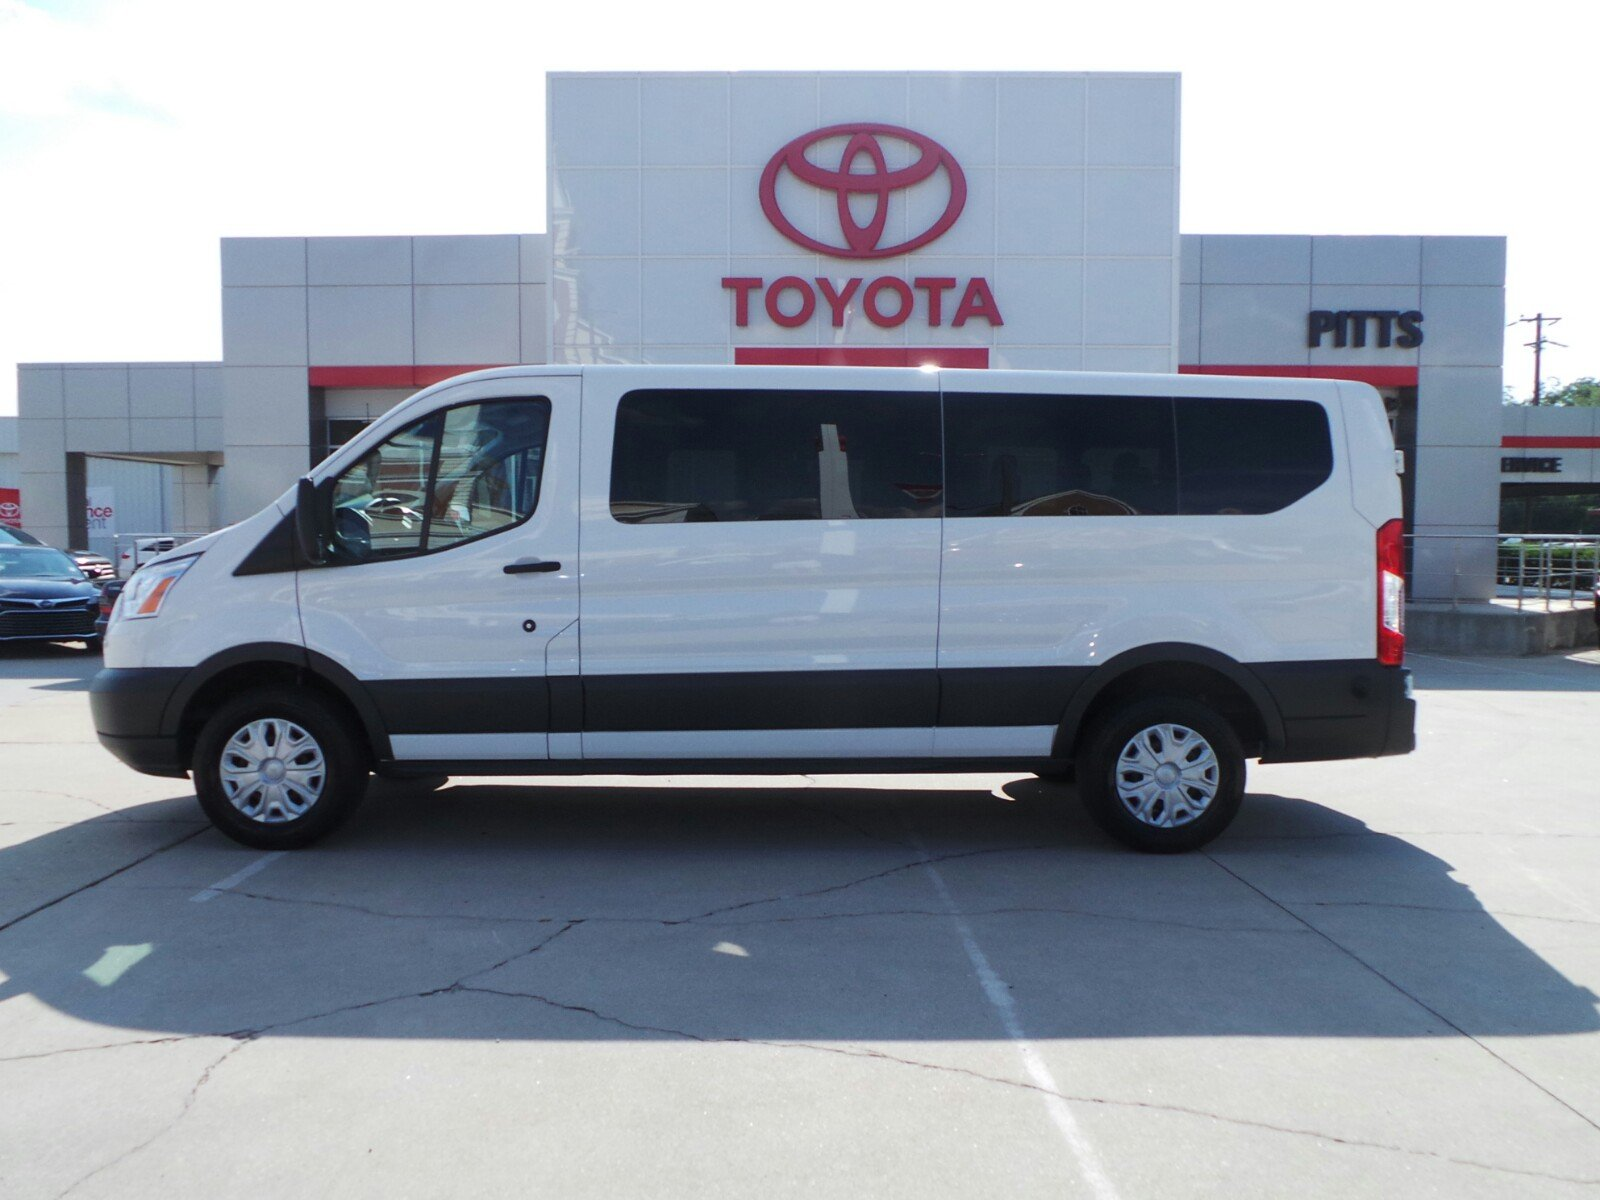 pre owned 2016 ford transit wagon xlt full size passenger van in dublin 95531 pitts toyota. Black Bedroom Furniture Sets. Home Design Ideas